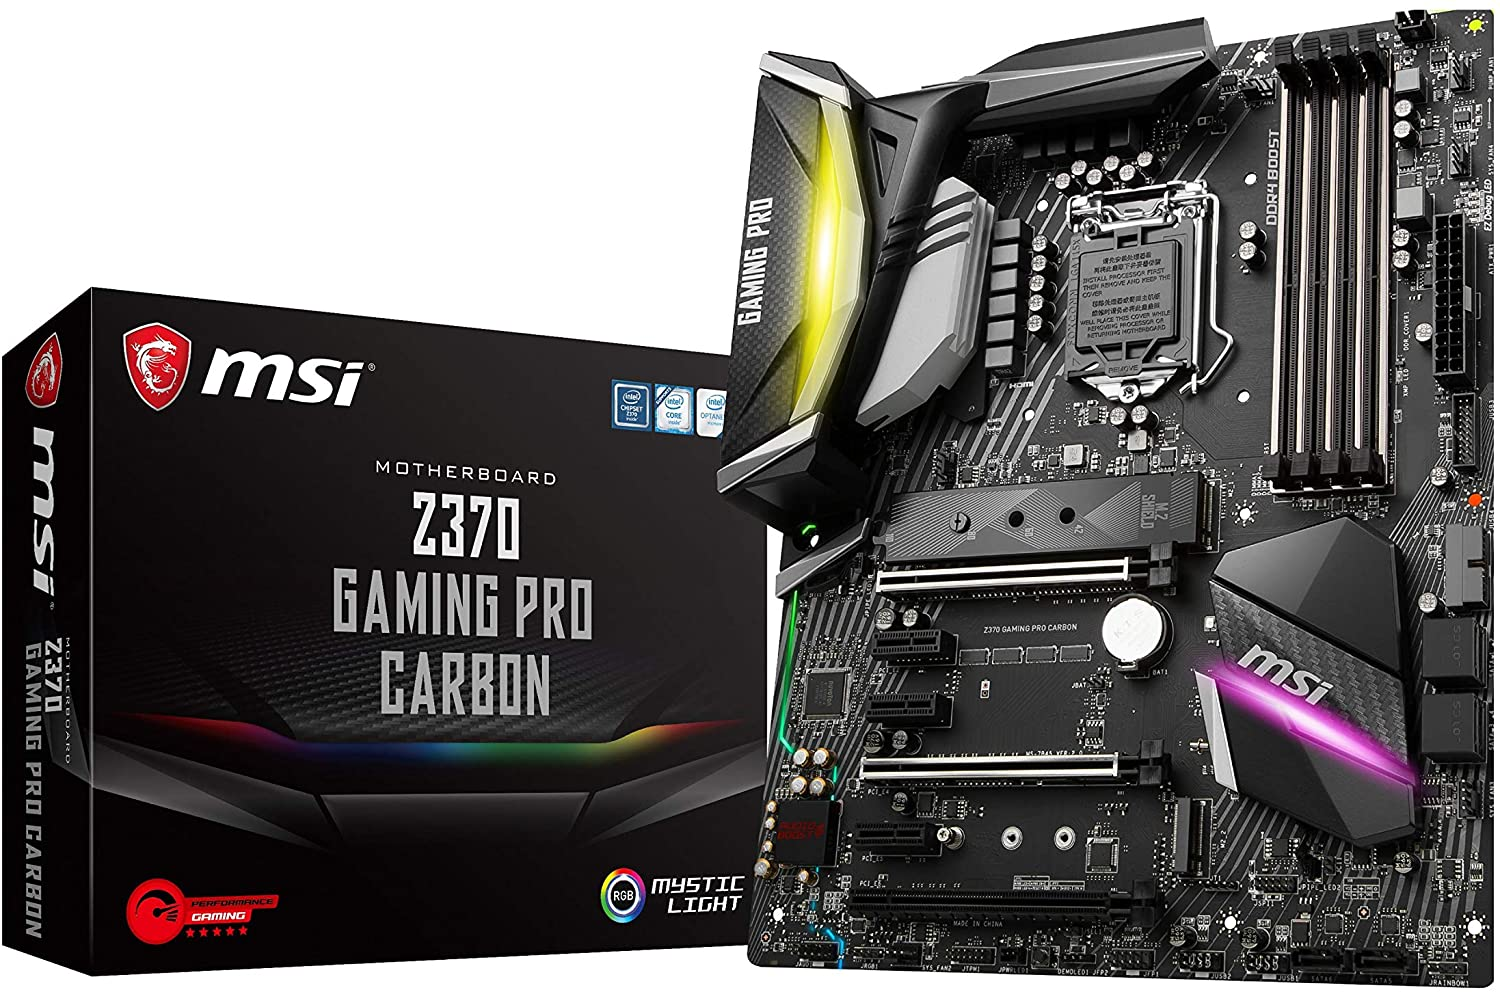 MSI Performance GAMING Intel 8th Gen LGA 1151 M.2 DVI HDMI USB 3.1 Gigabit LAN SLI CFX ATX Motherboard (Z370 GAMING PRO CARBON)